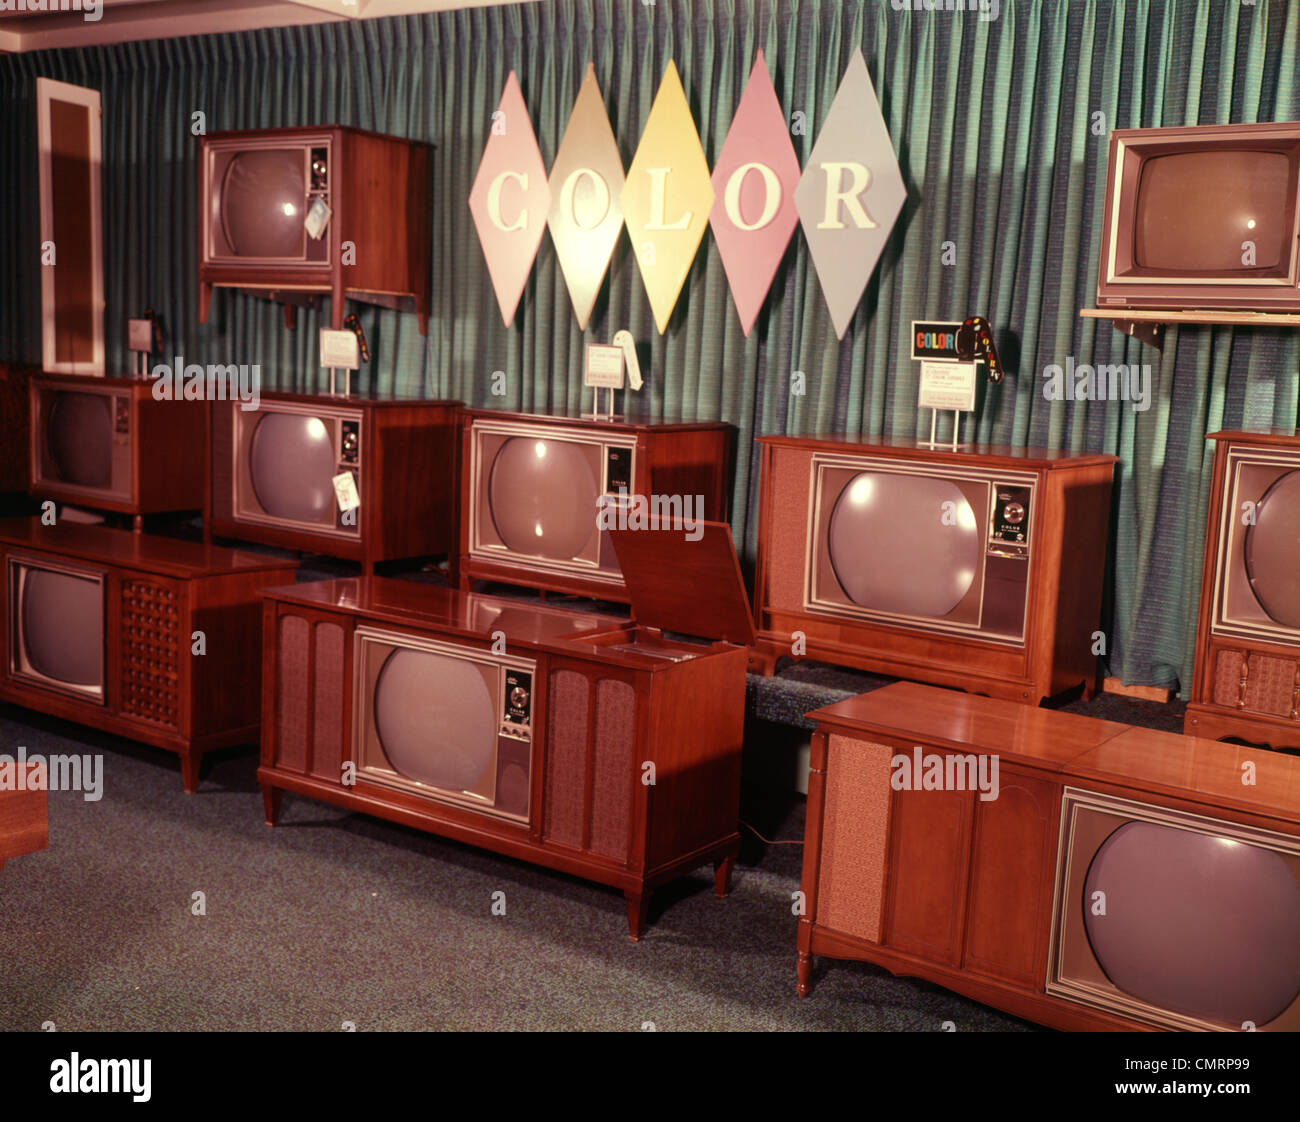 1960 1960s Display Of Color Television Sets For Sale